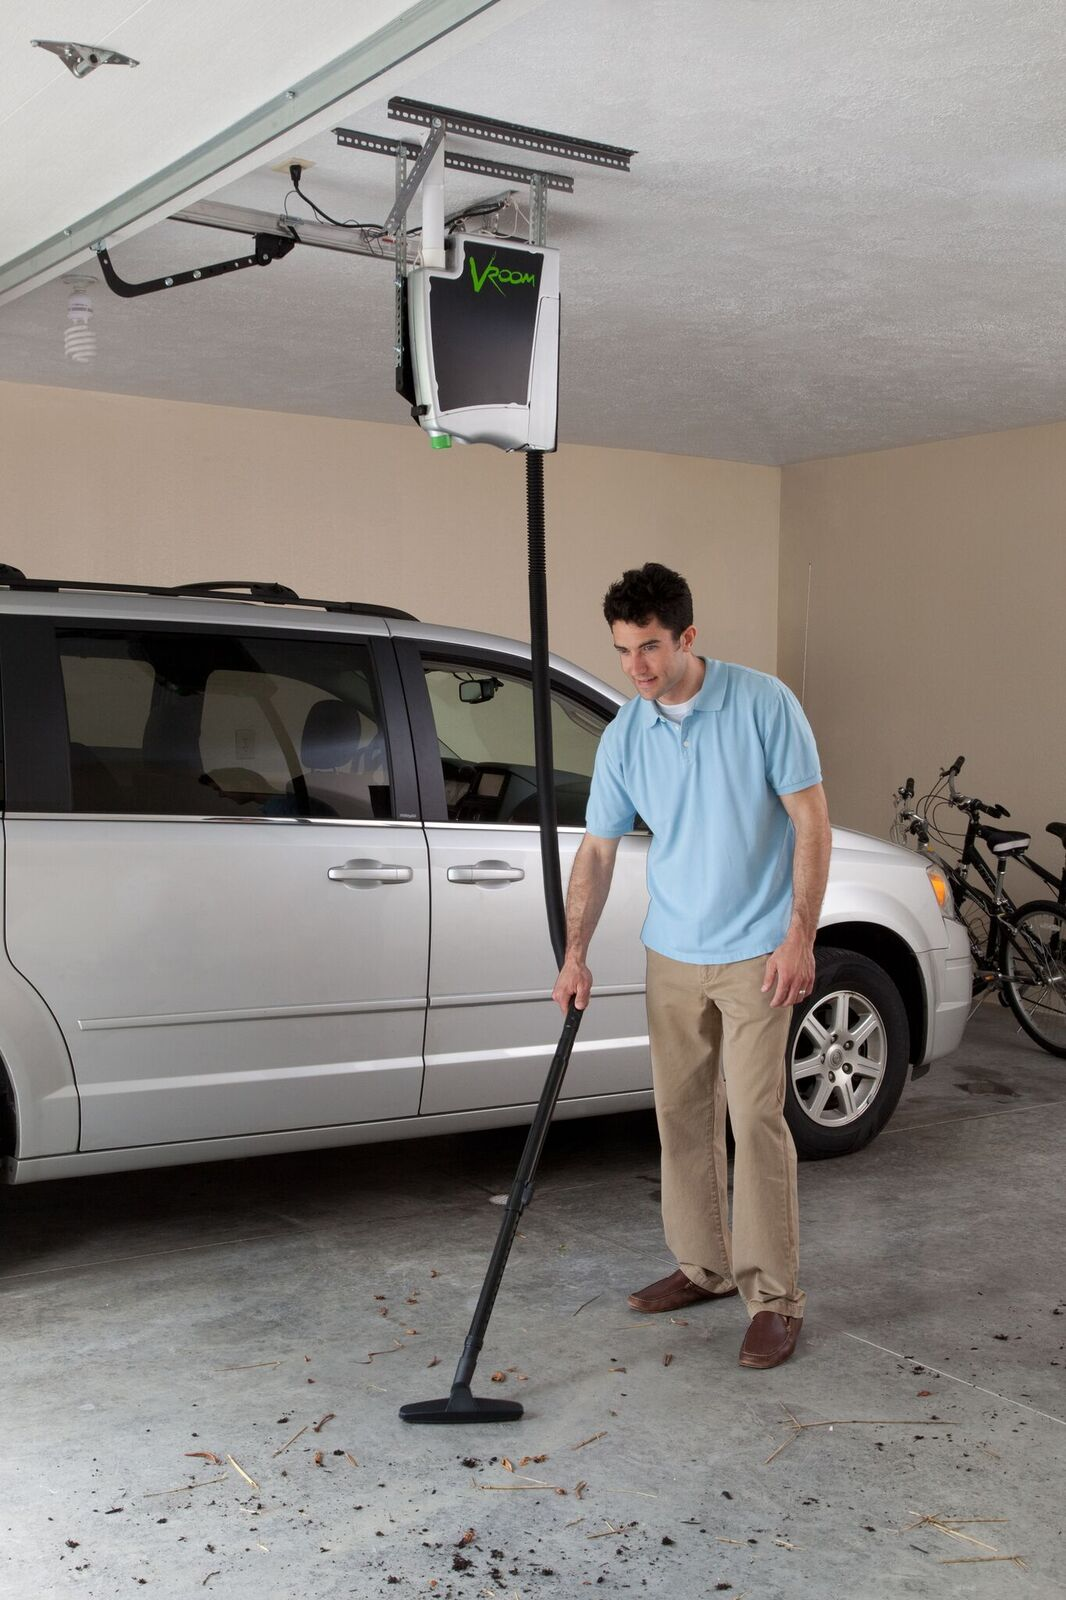 Vroom 9460 Garage Vac Ultra Evacuumstore Com